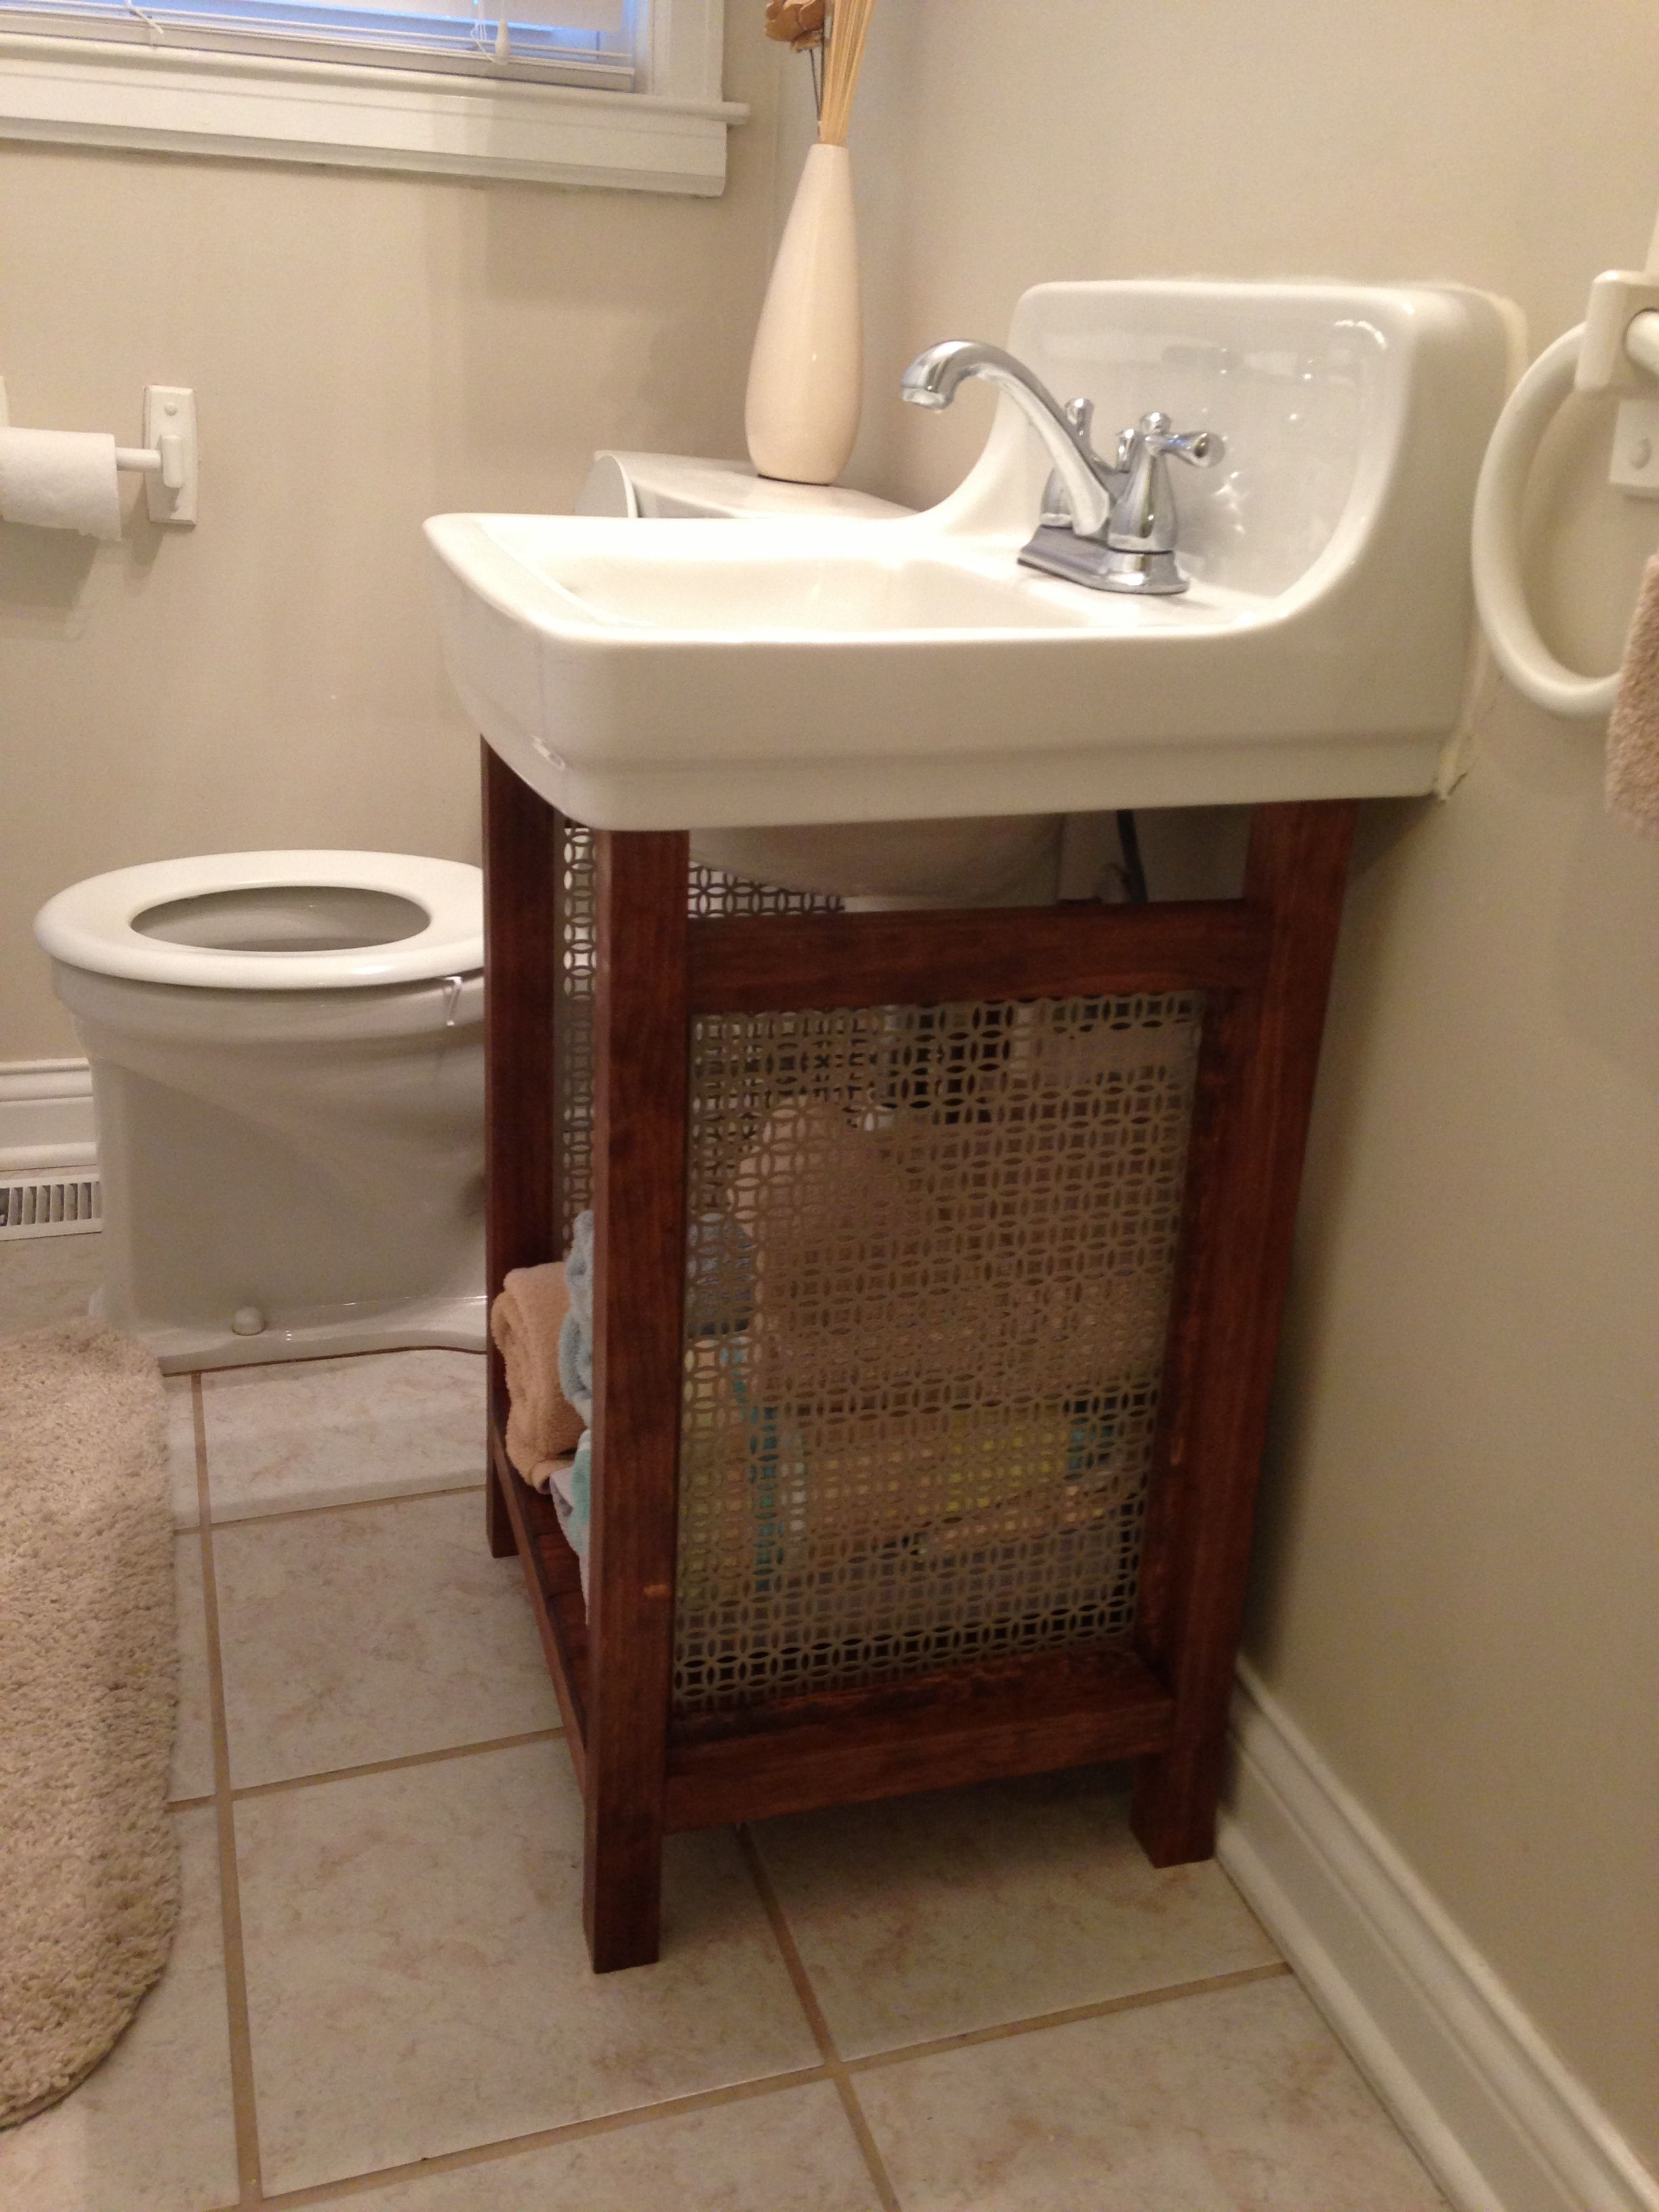 Solution For Old Wall Mounted Sink That Is Super Hard To Replace Pine Boards And Vent G Bathroom Sink Storage Under Bathroom Sinks Wall Mounted Bathroom Sinks